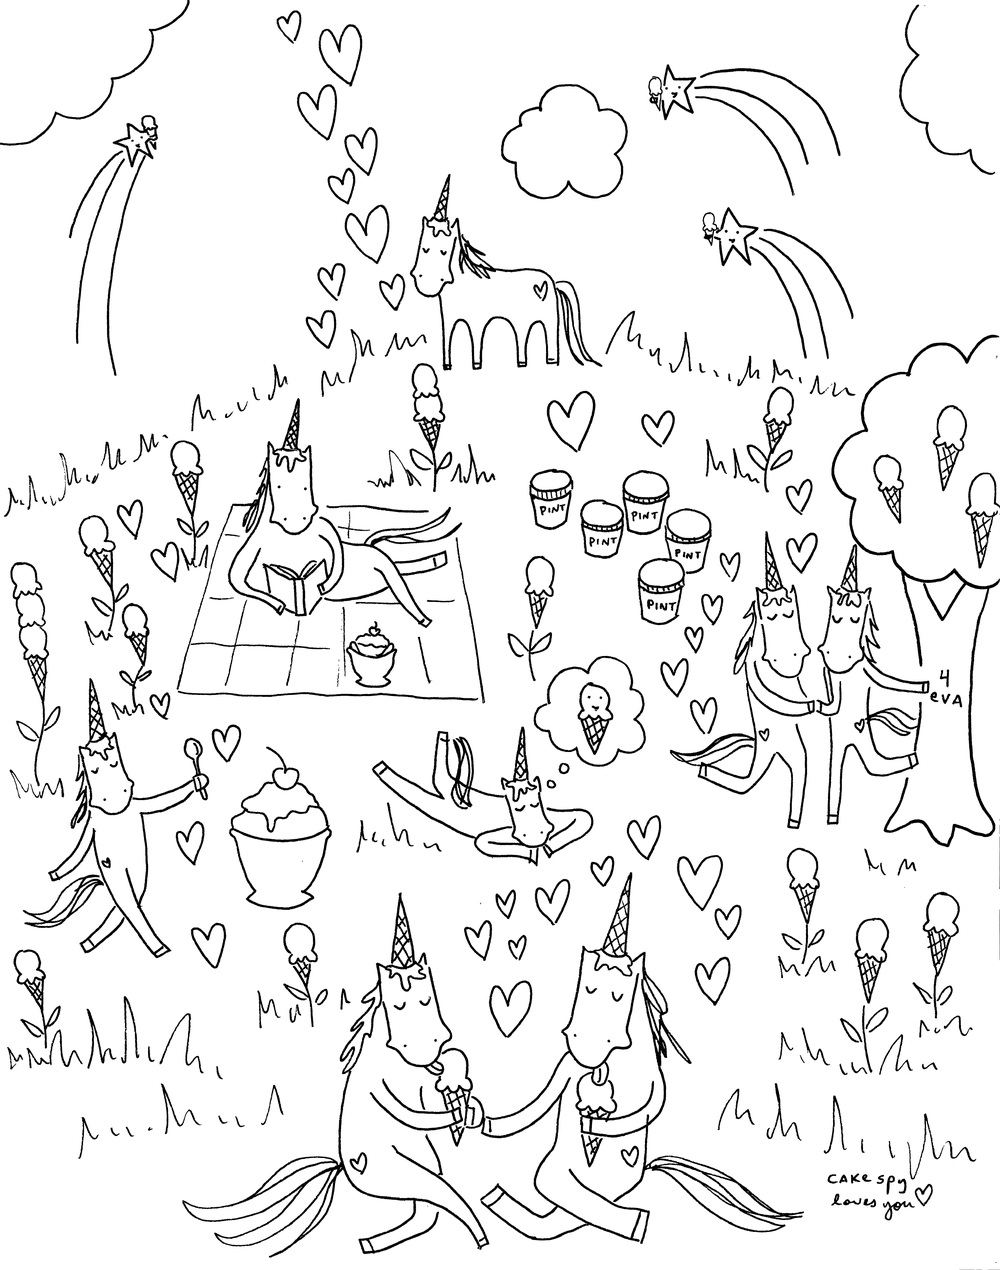 Website remodel, and a coloring book page for you. — CakeSpy